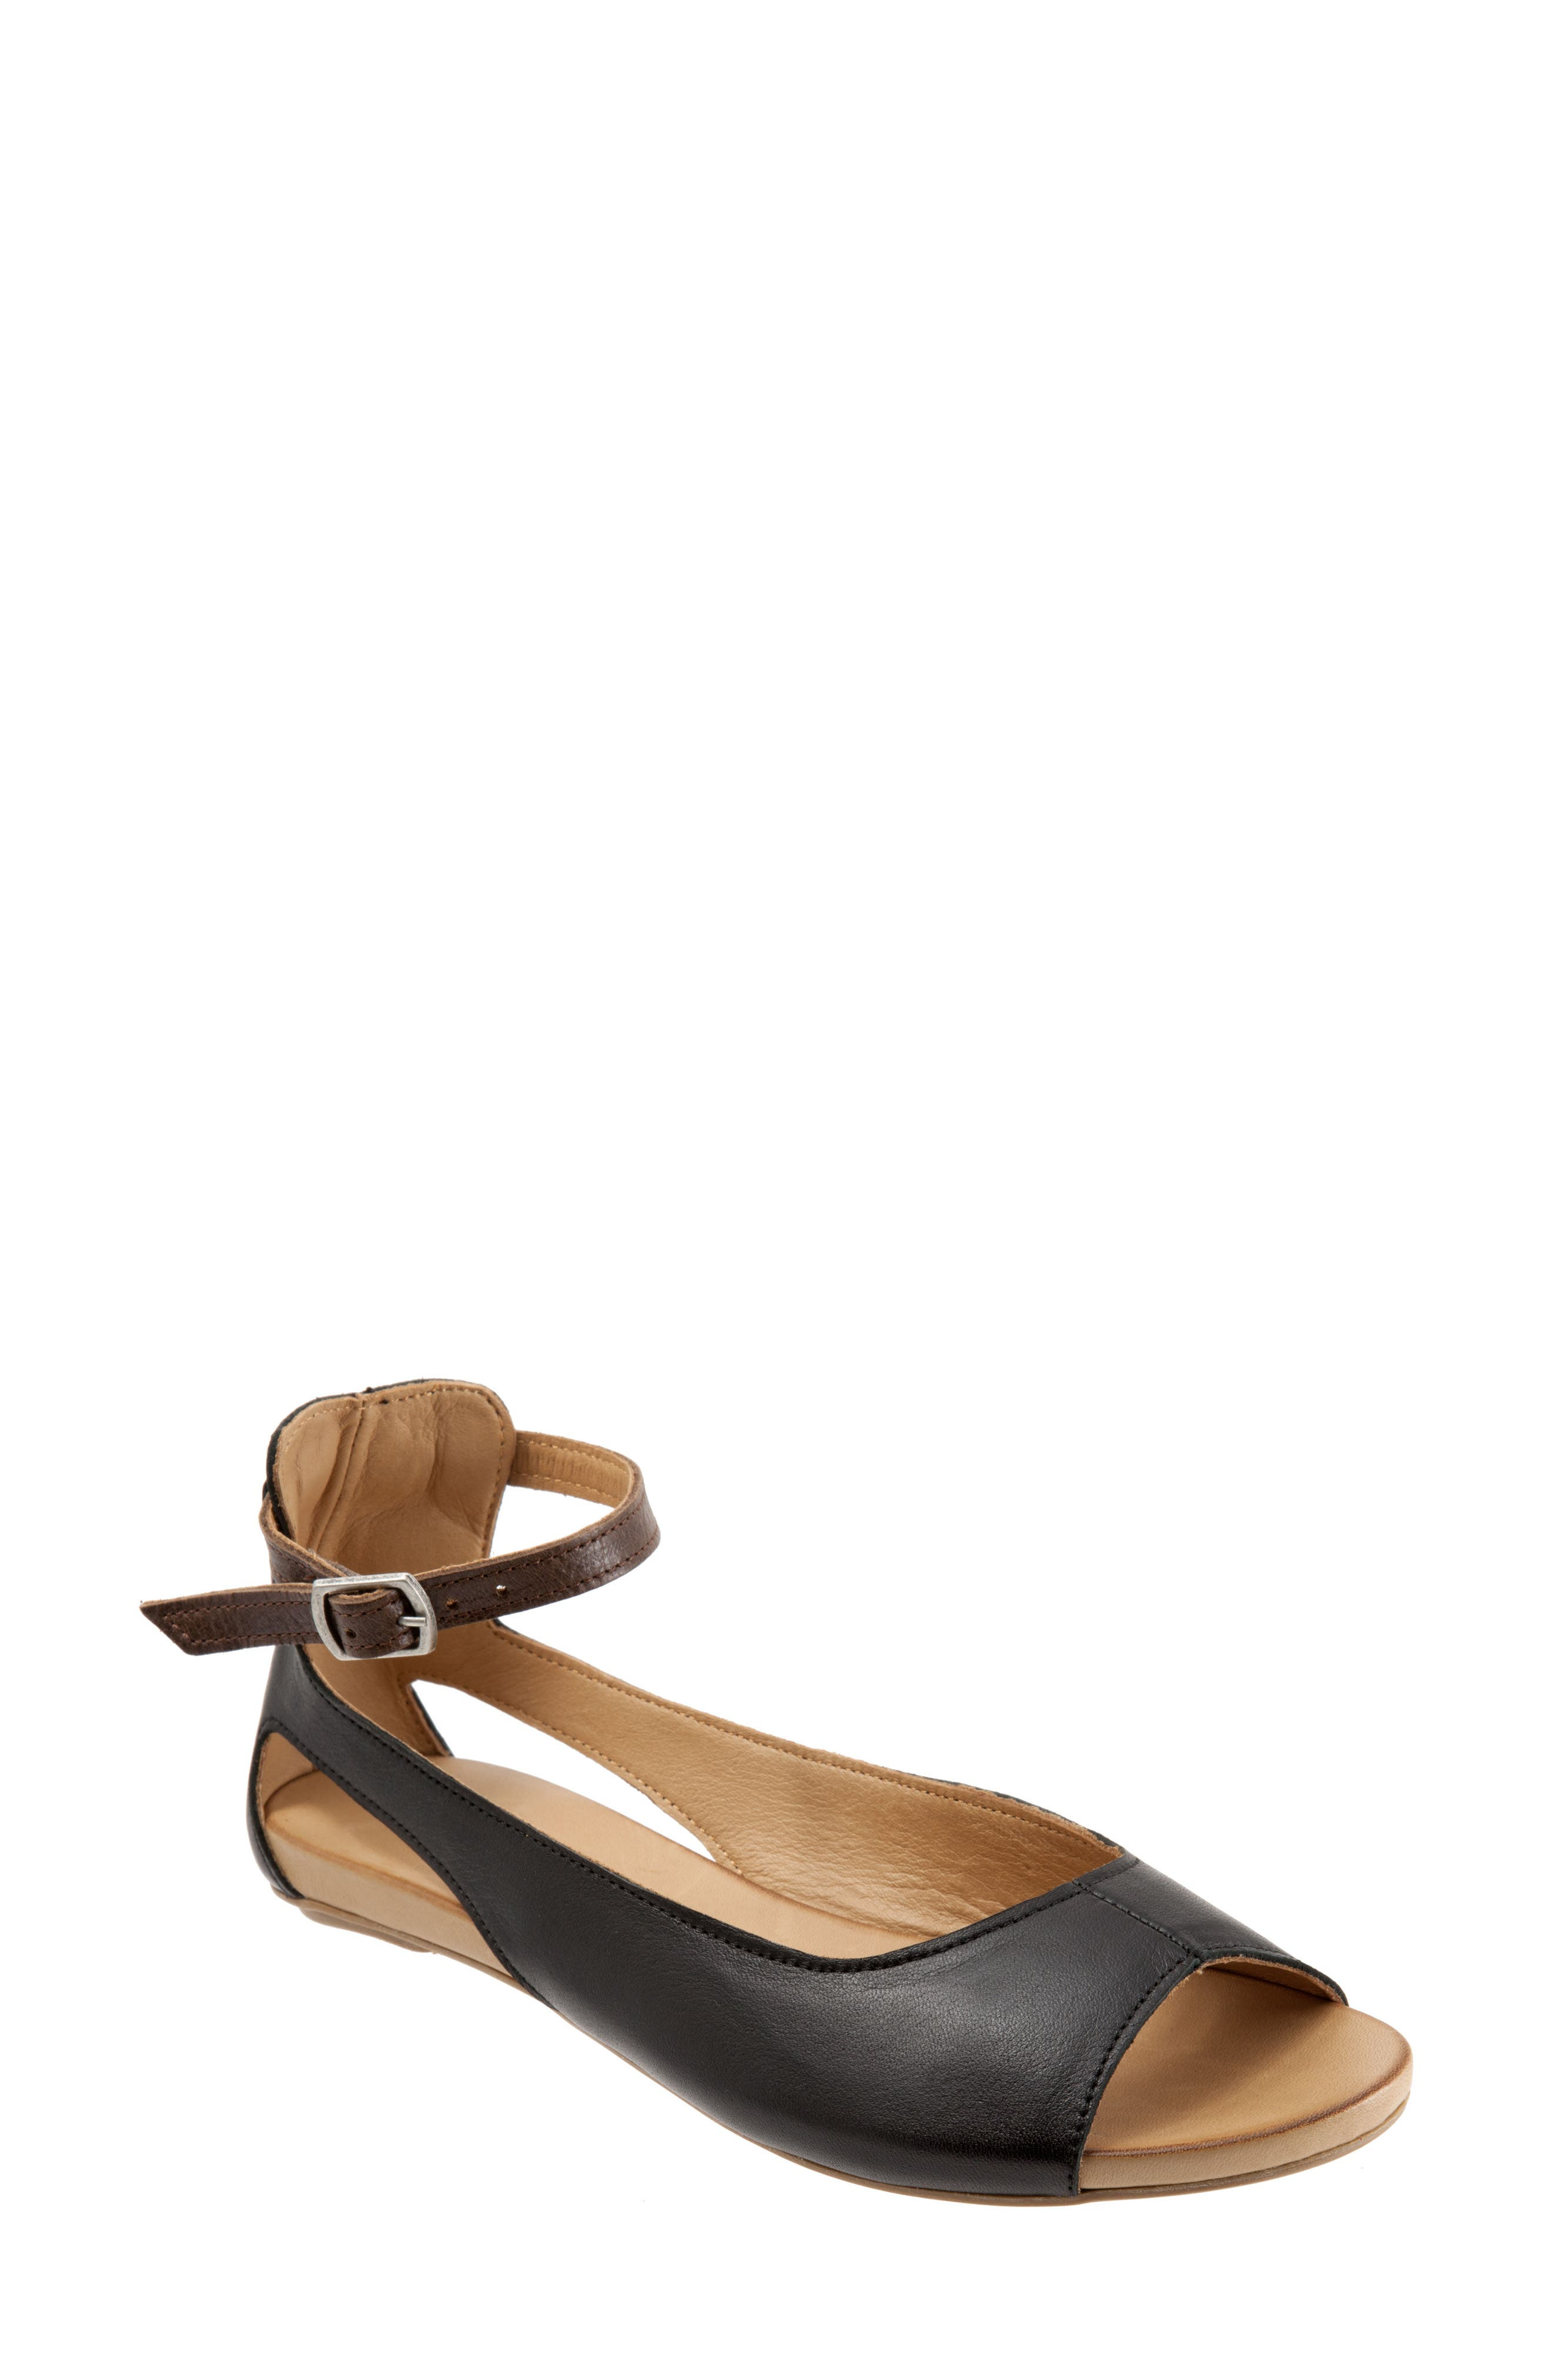 Donna Ankle Strap Sandal,                         Main,                         color, BLACK LEATHER